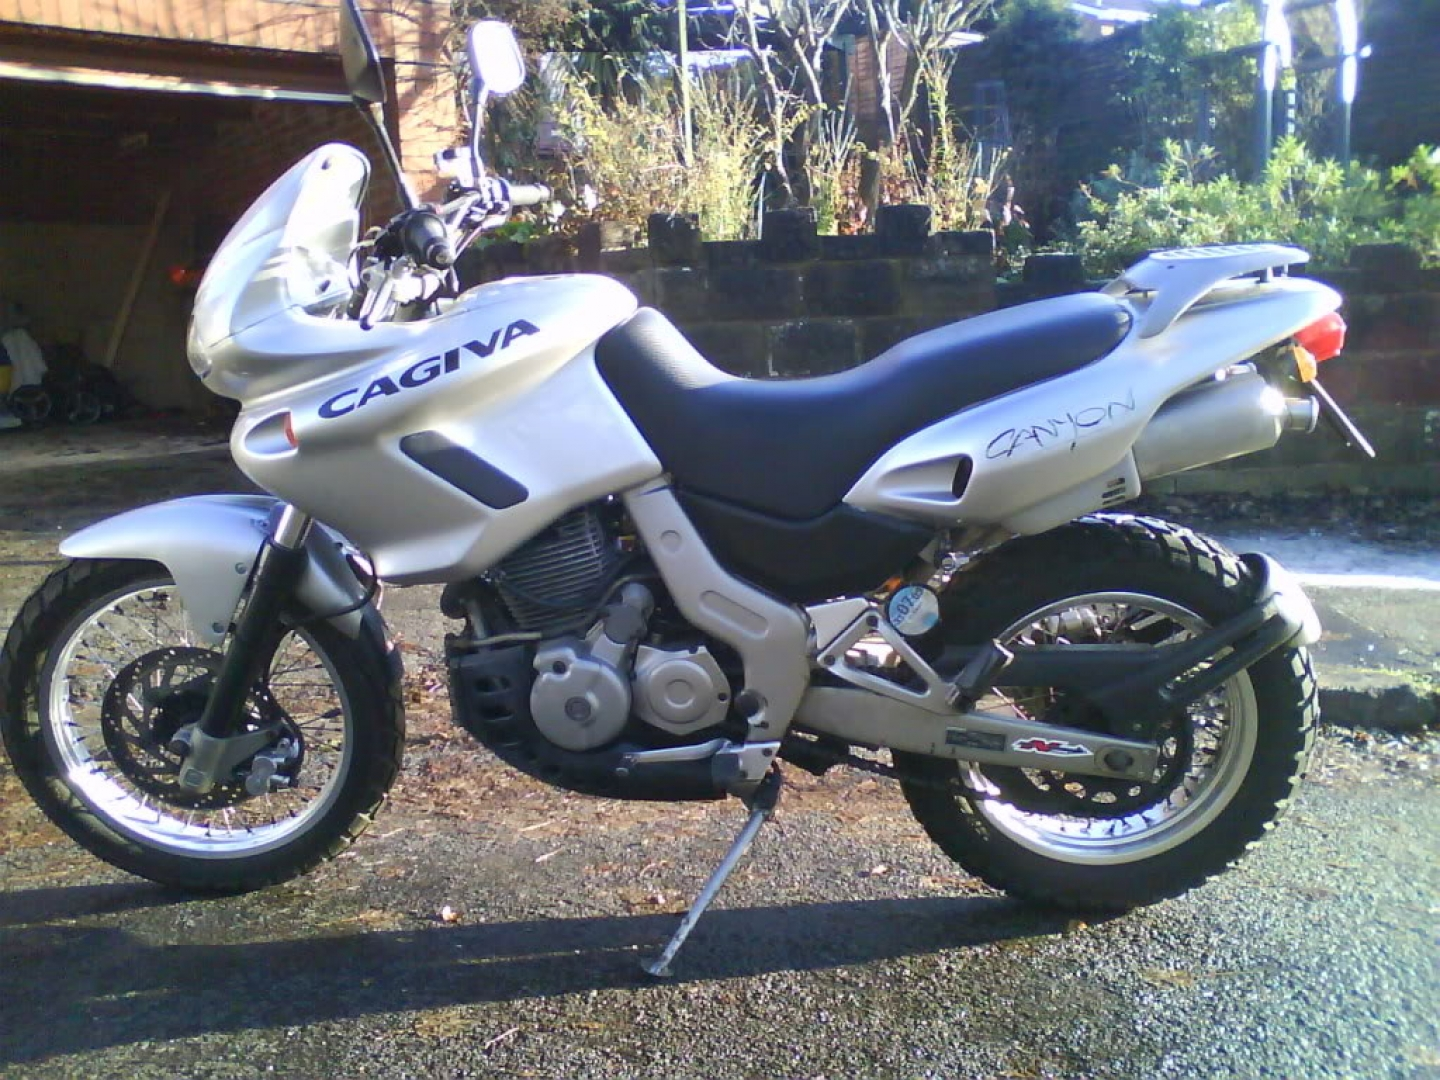 Cagiva Grand Canyon 900 IE 1997 images #67430